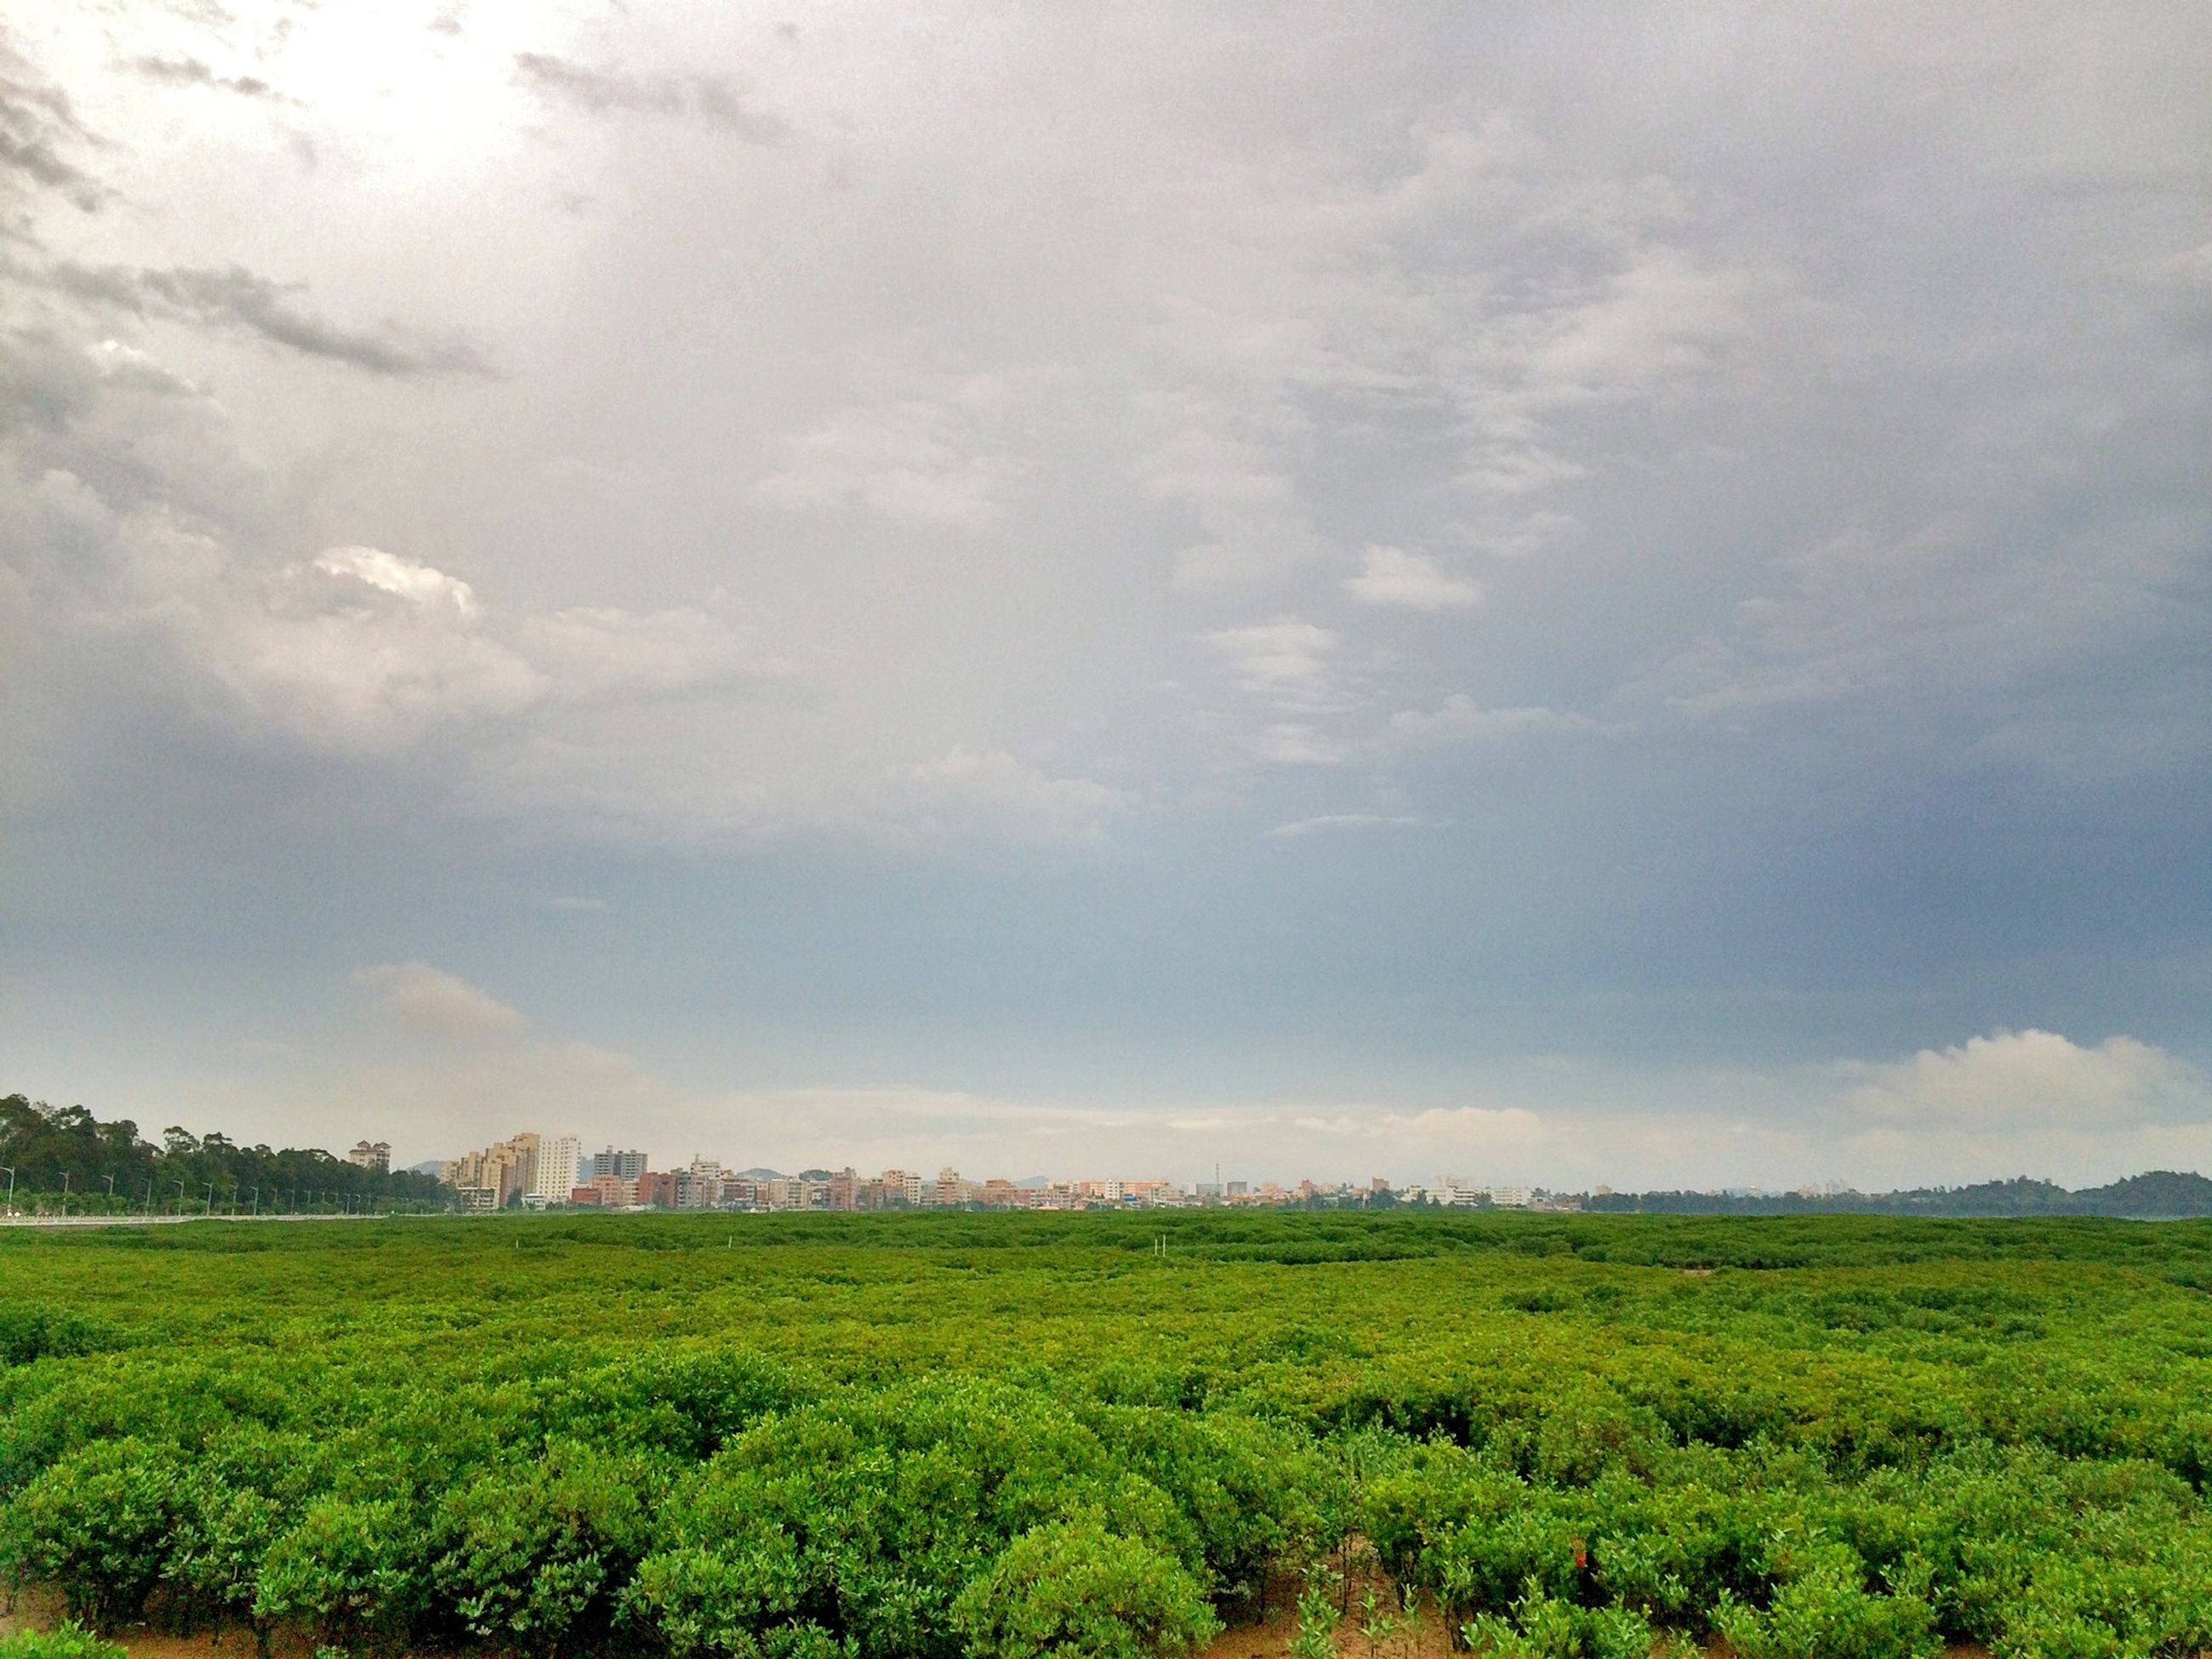 sky, green color, grass, tranquil scene, field, landscape, tranquility, scenics, beauty in nature, cloud - sky, nature, growth, cloudy, cloud, tree, grassy, green, idyllic, rural scene, day